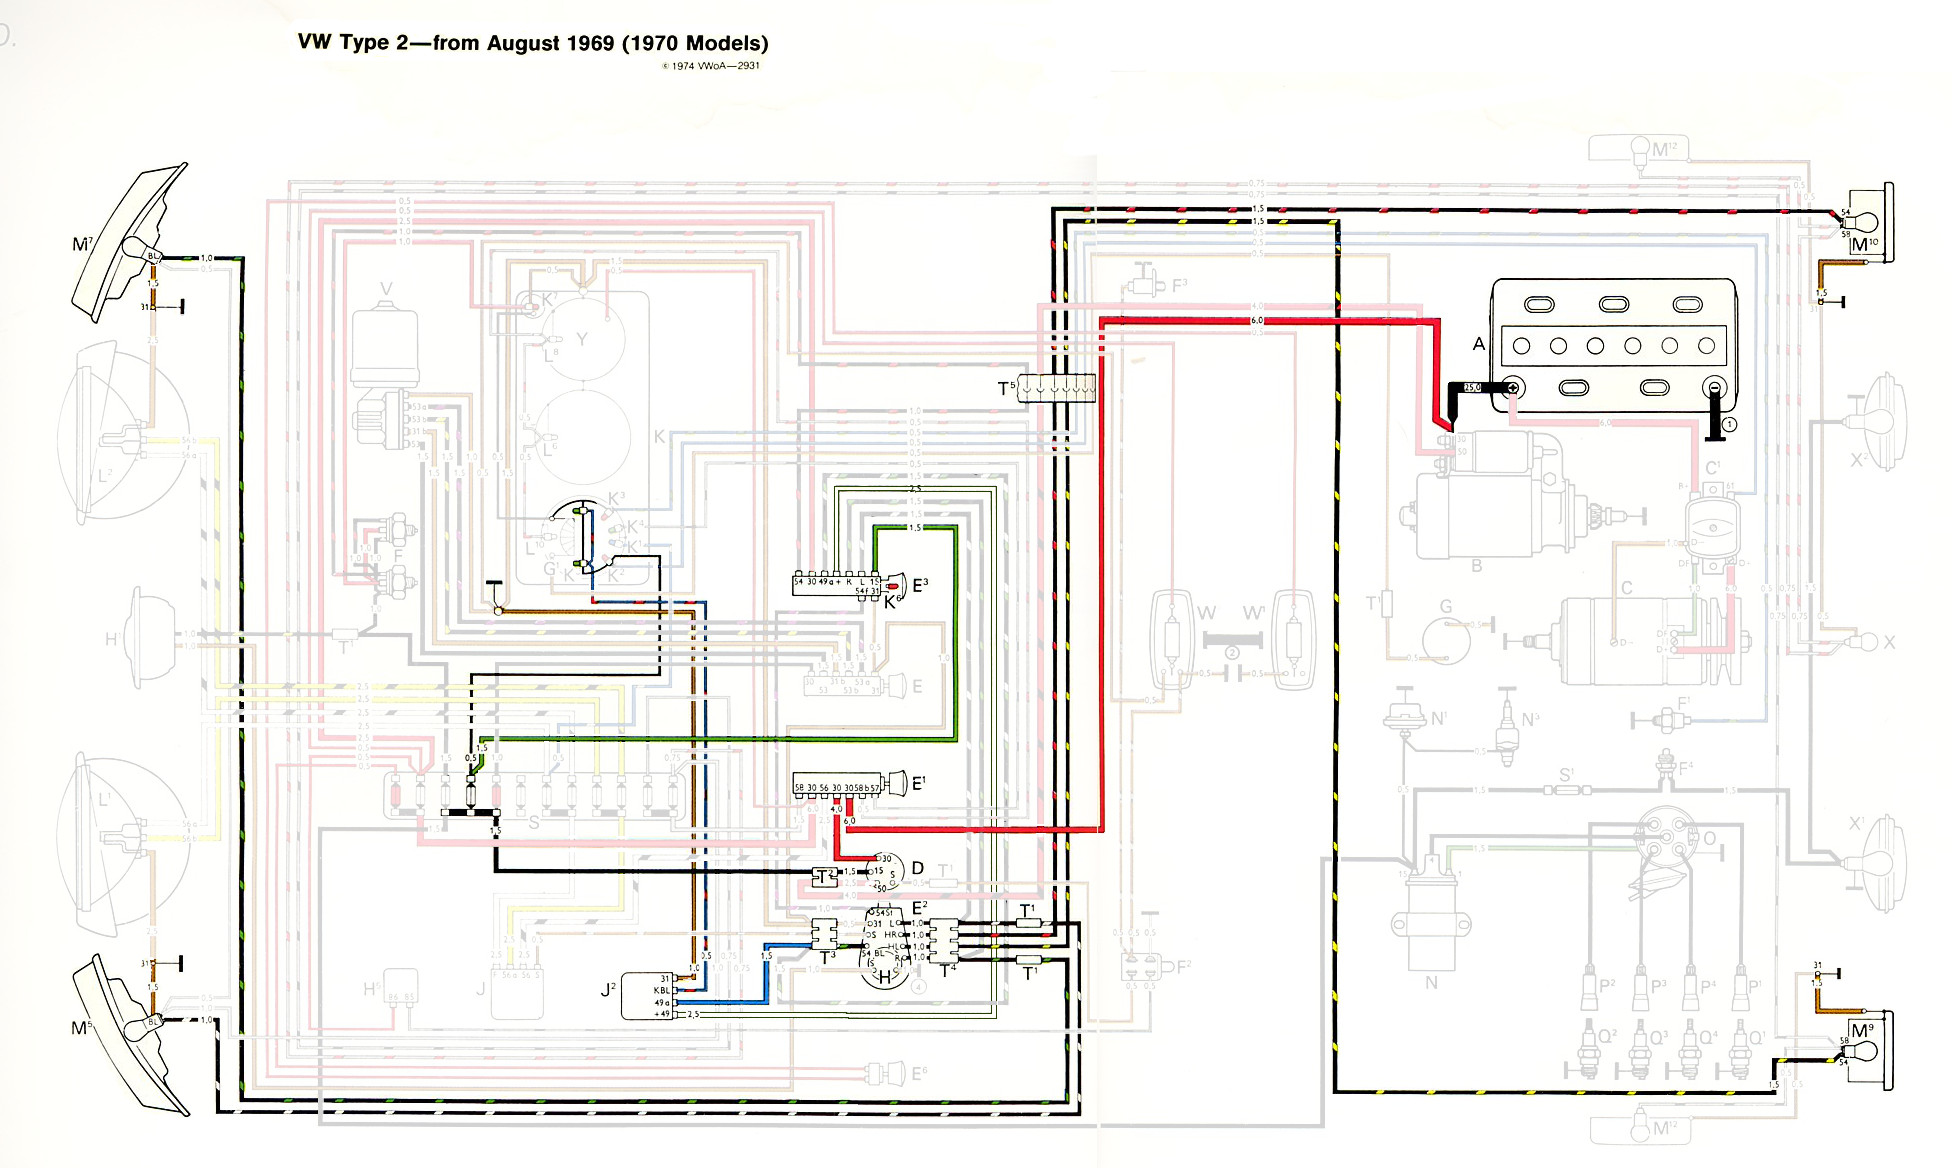 1970bus_signals 1970 vw beetle wiring diagram 1967 vw beetle wiring diagram Wiring Harness Diagram at creativeand.co